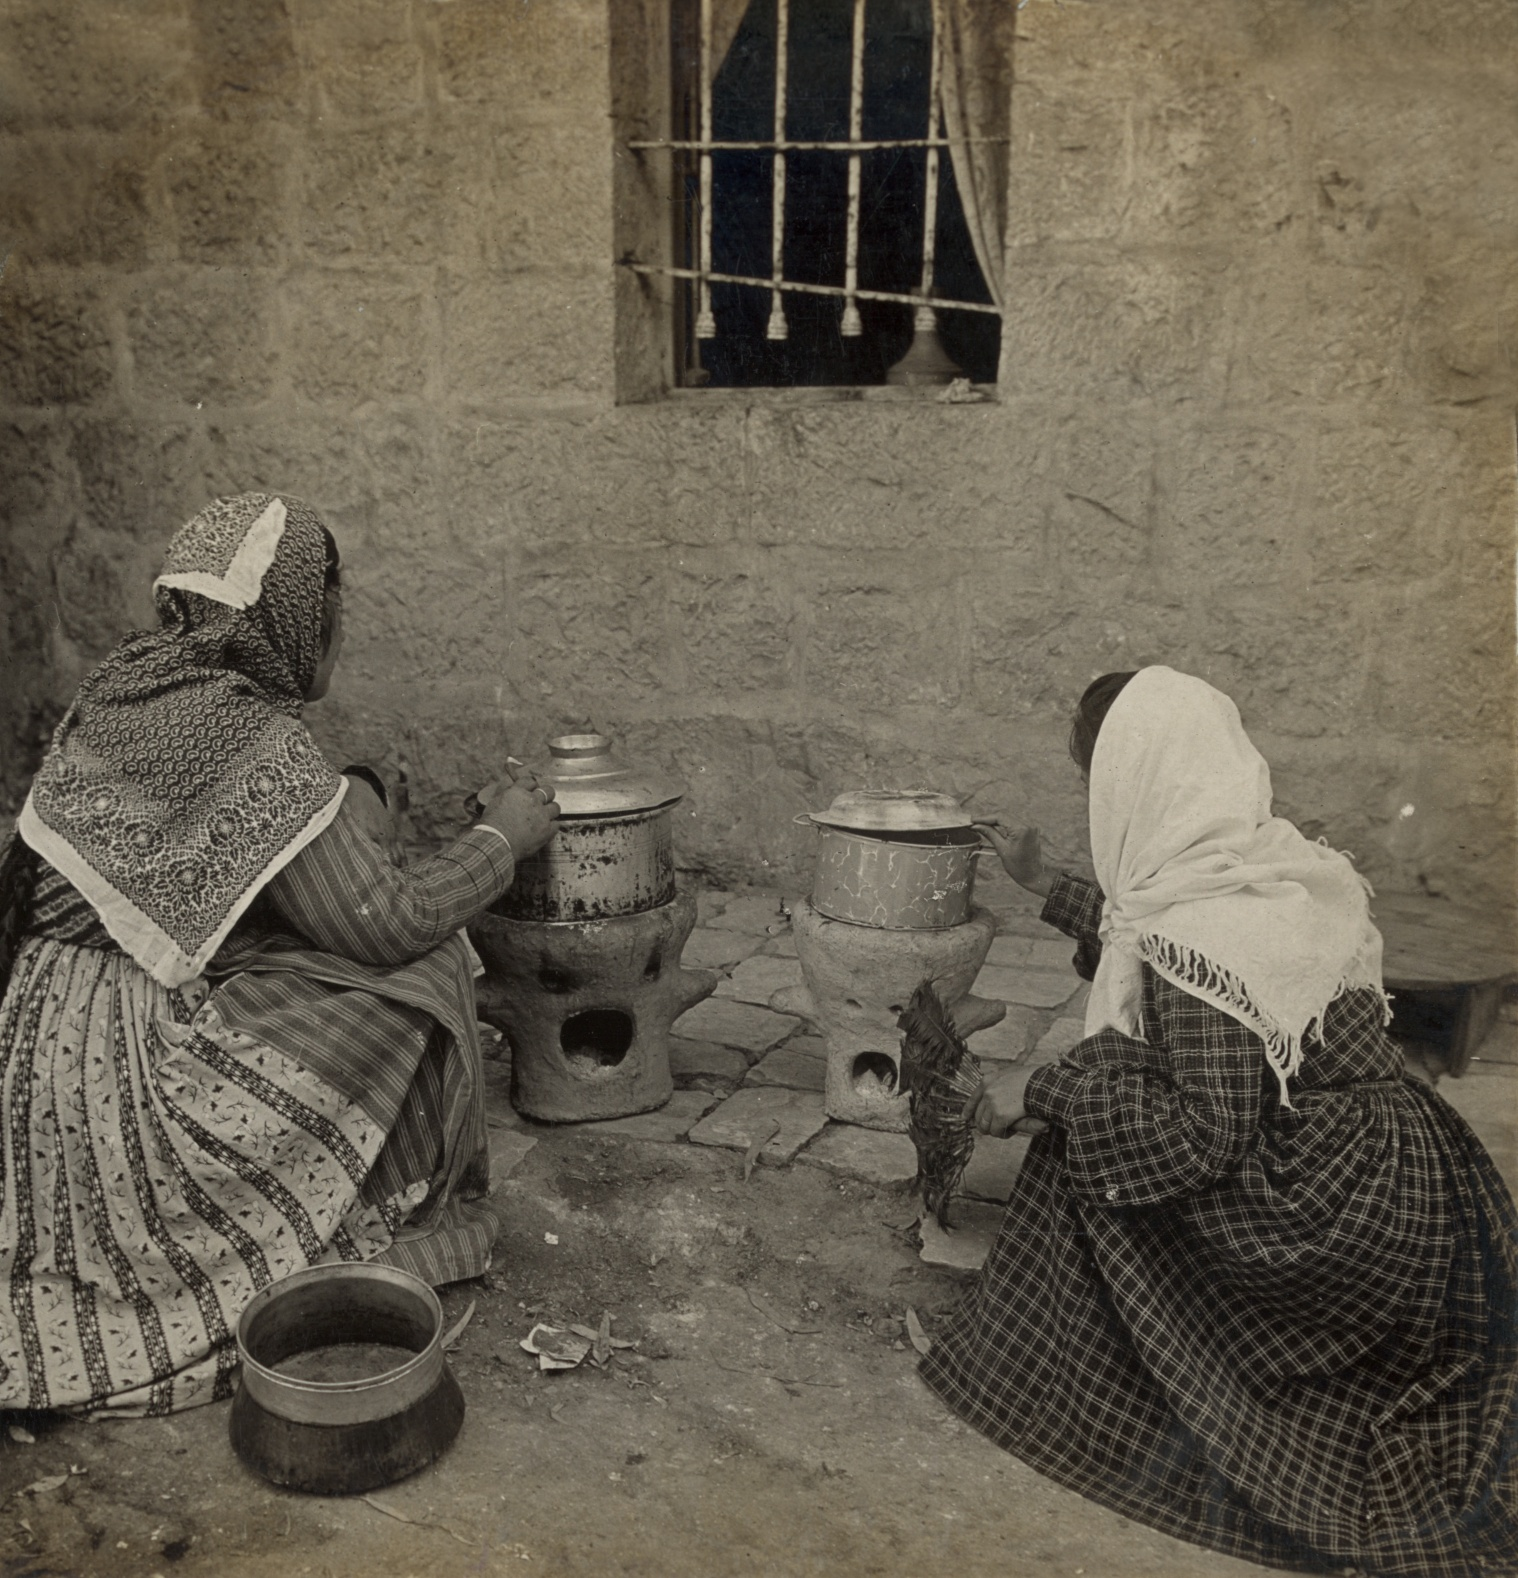 Nazareth - الناصرة : NAZARETH - Late 19th, early 20th c. 26 - Arab women  cooking on clay stoves, using charcoal for fuel, Nazareth area, northern Palestine,  1905